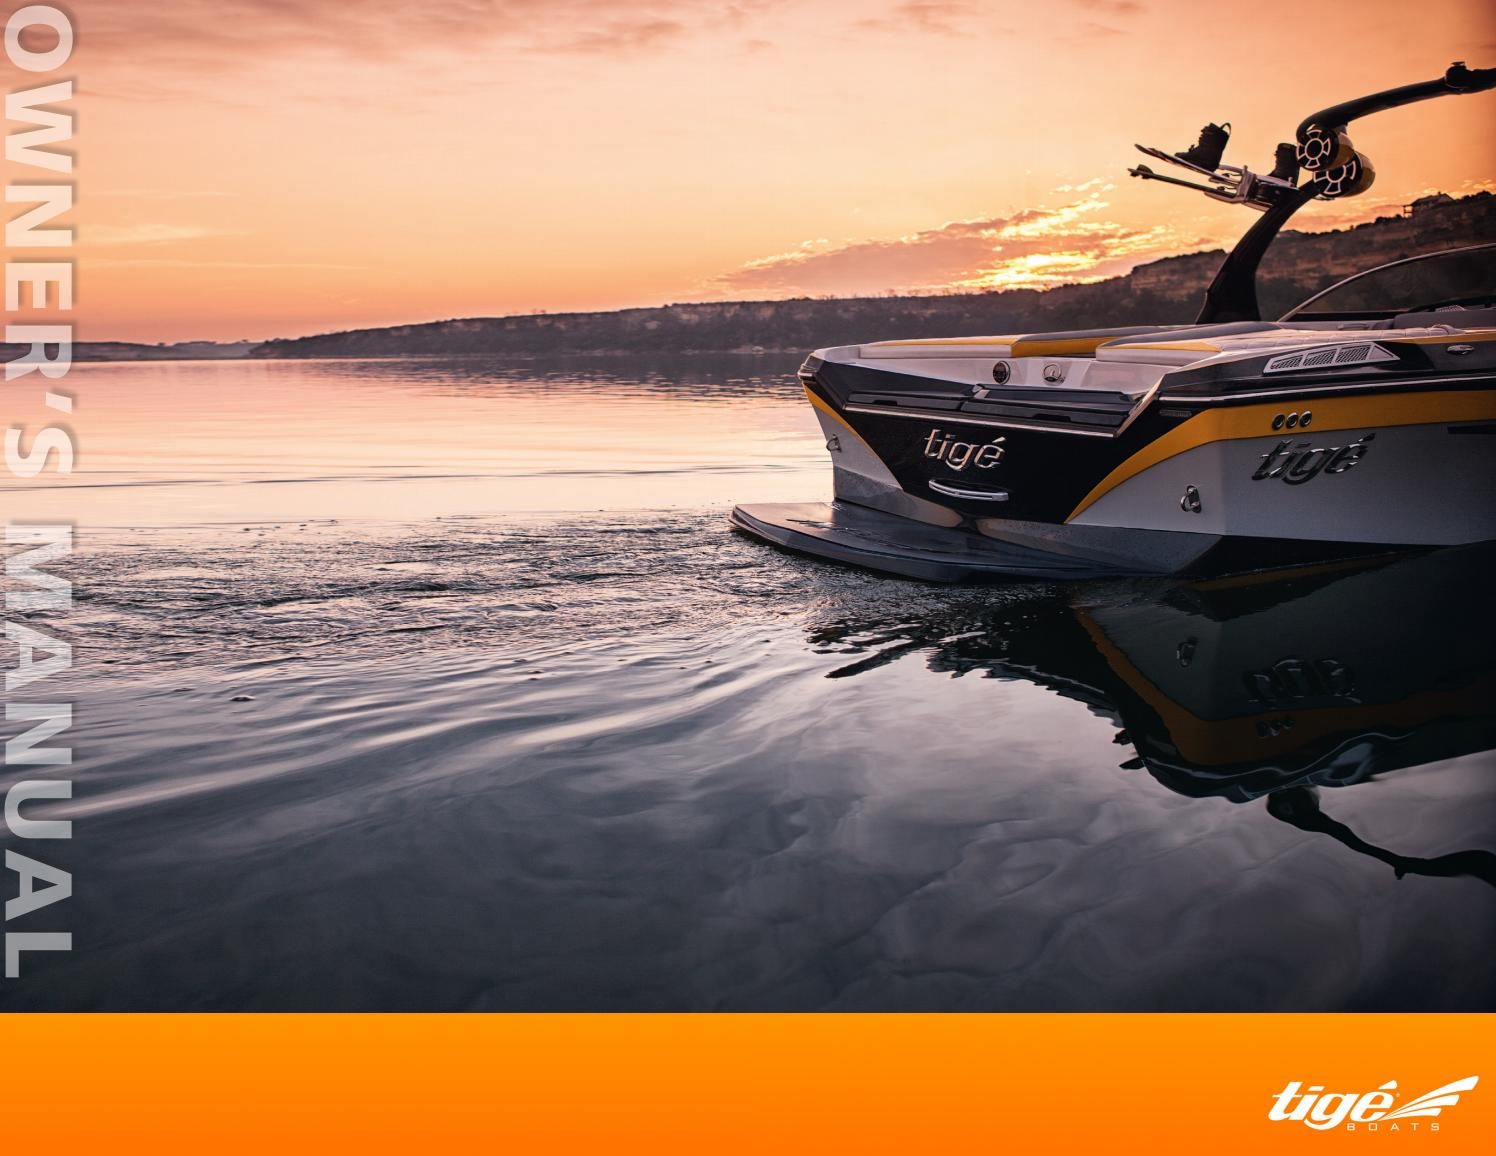 2013 tige owner s manual by tige boats issuu rh issuu com 2001 tige owners manual tige owners manual 2016